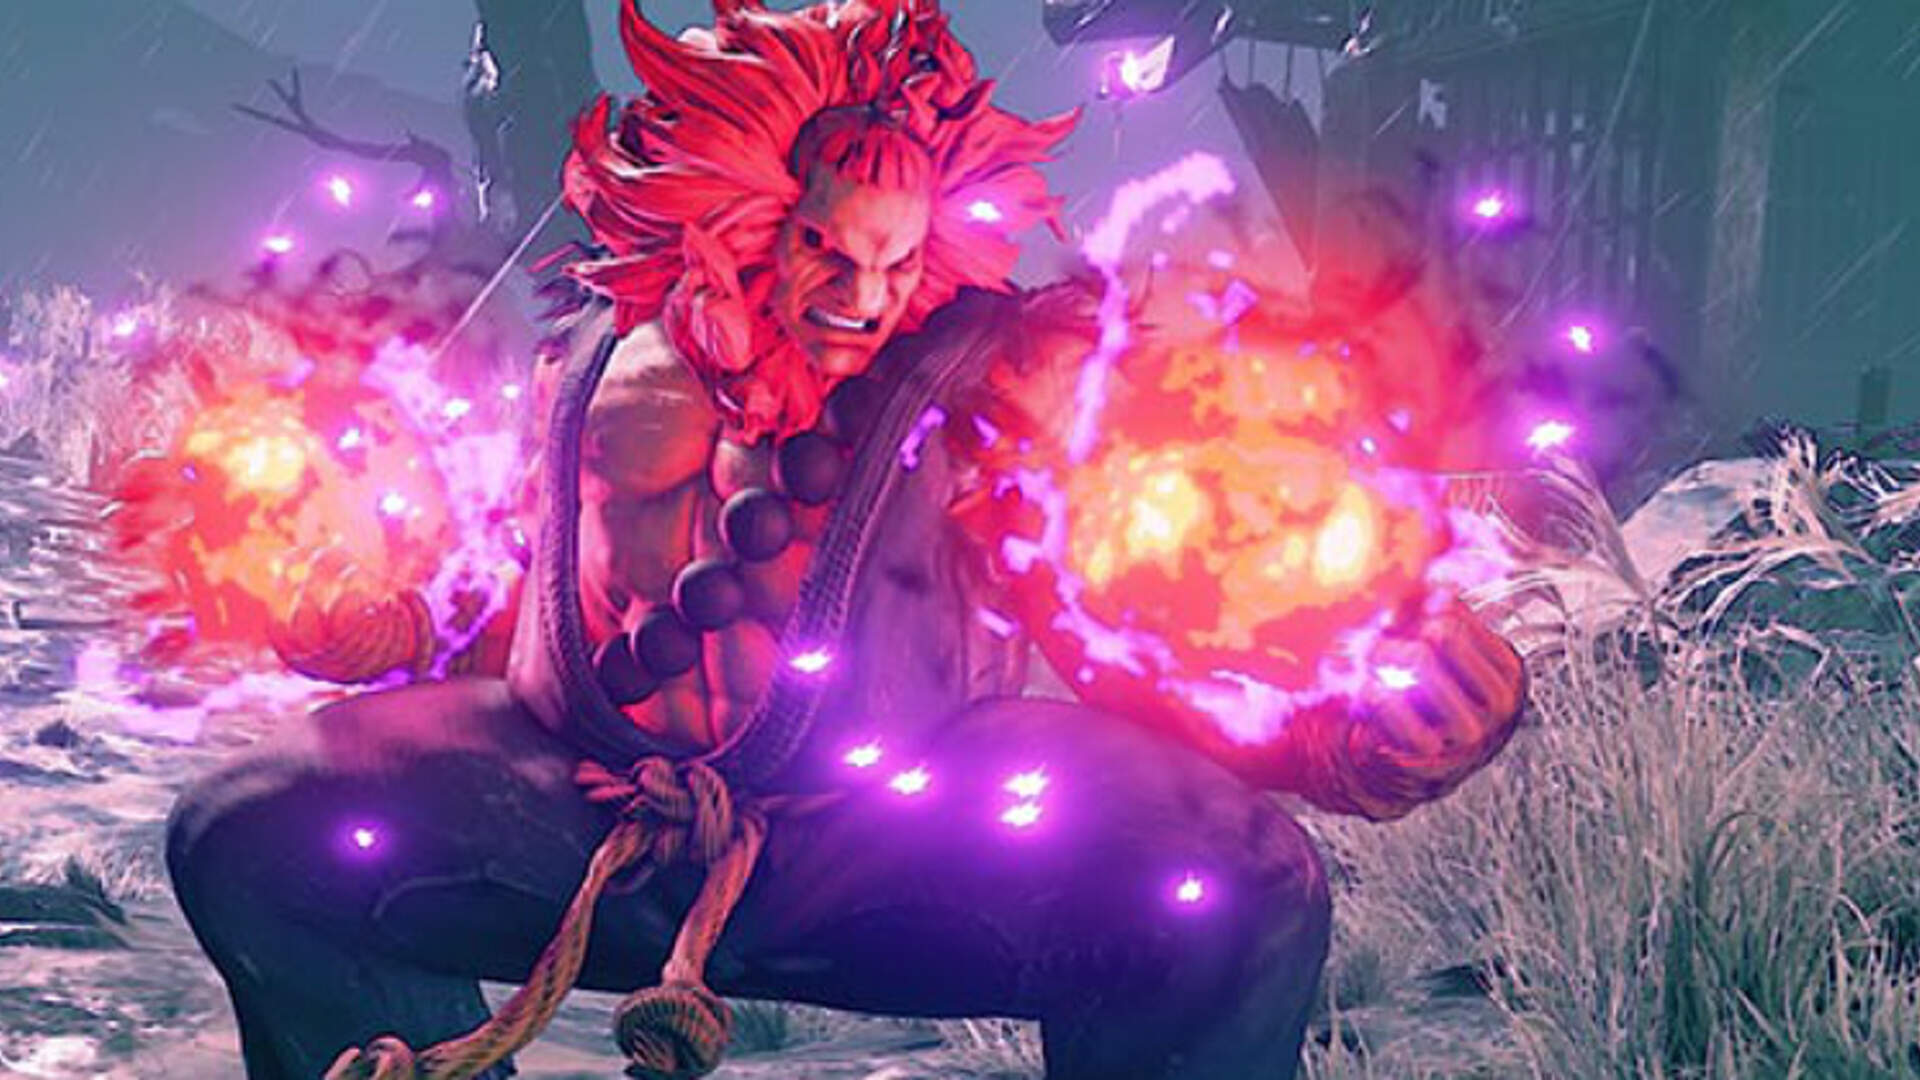 Street Fighter 5 Kicks Off Season 2 With Akuma on Dec 20